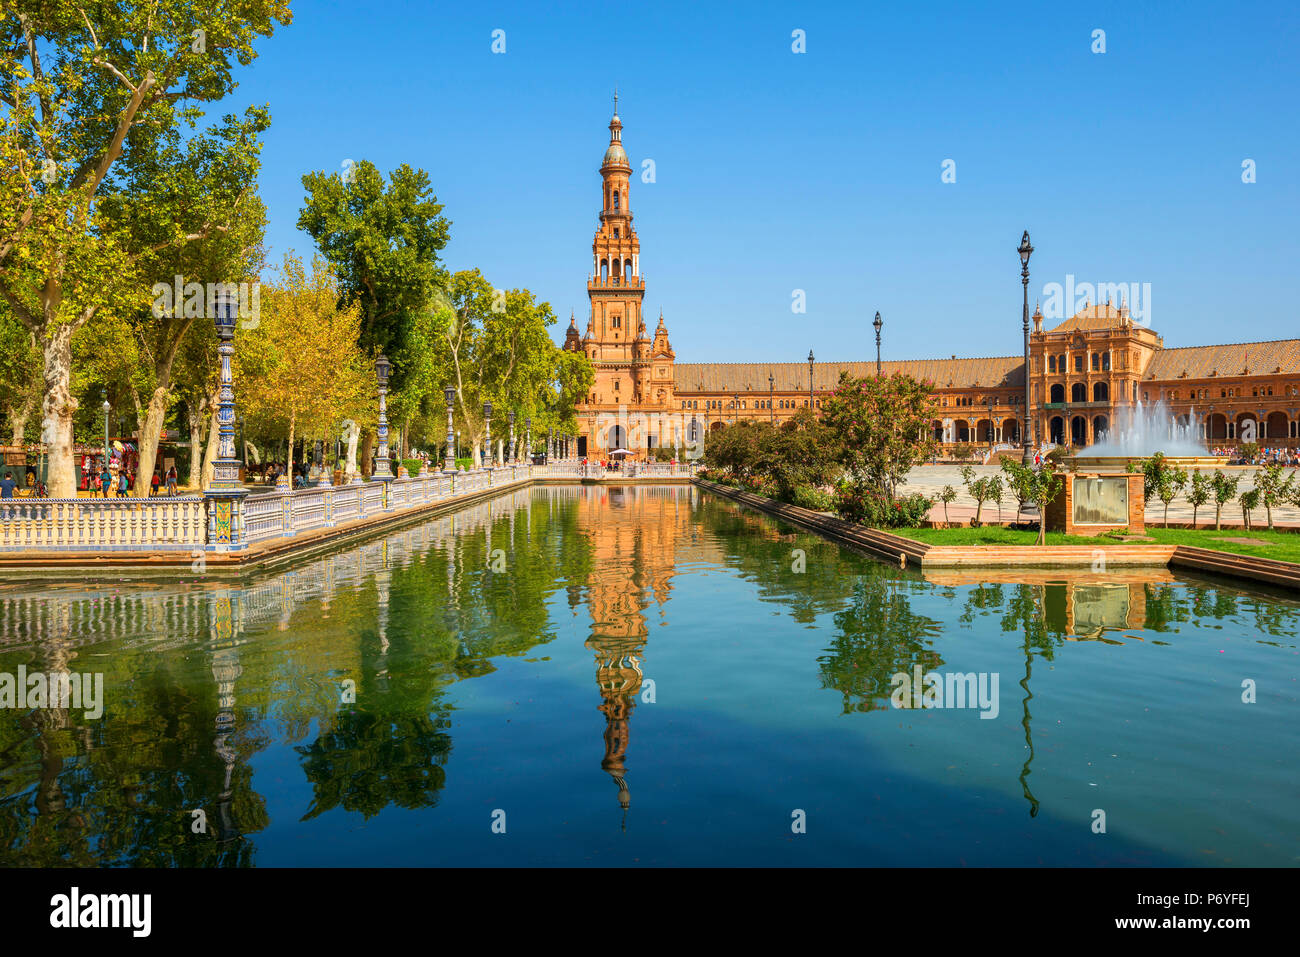 Plaza de Espana, Sevilla, Andalusia, Spain - Stock Image